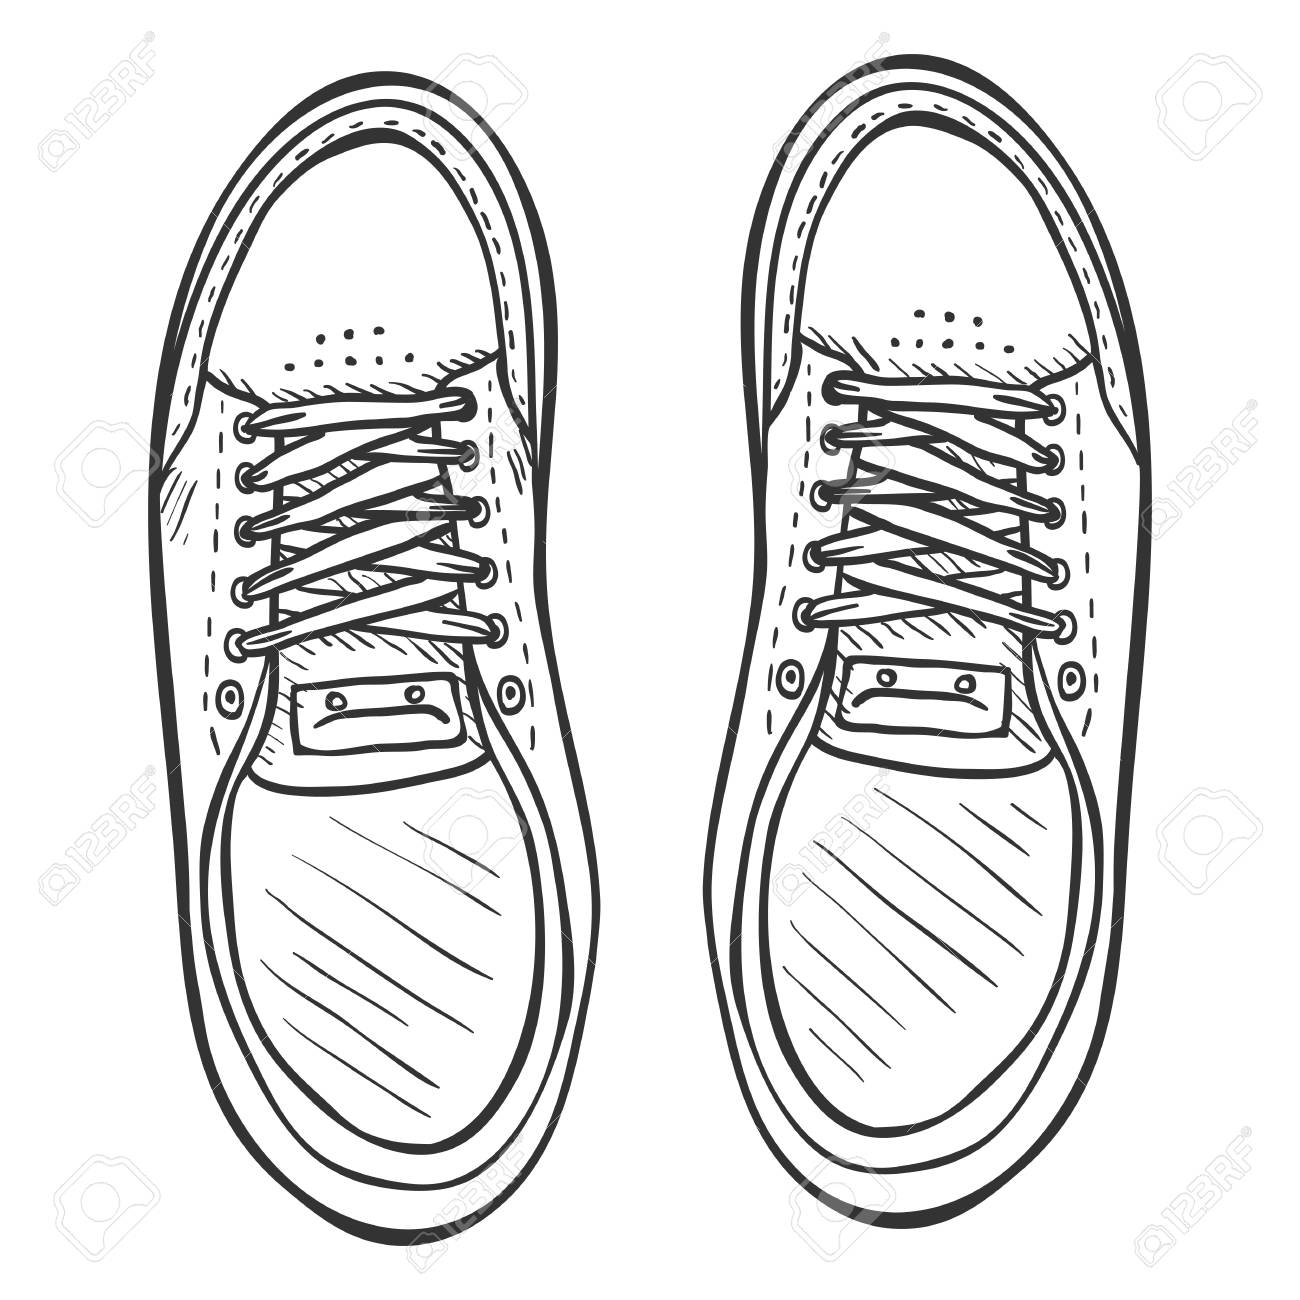 Top of shoe clipart png free stock Shoe Clipart sketch 9 - 1300 X 1300 Free Clip Art stock ... png free stock